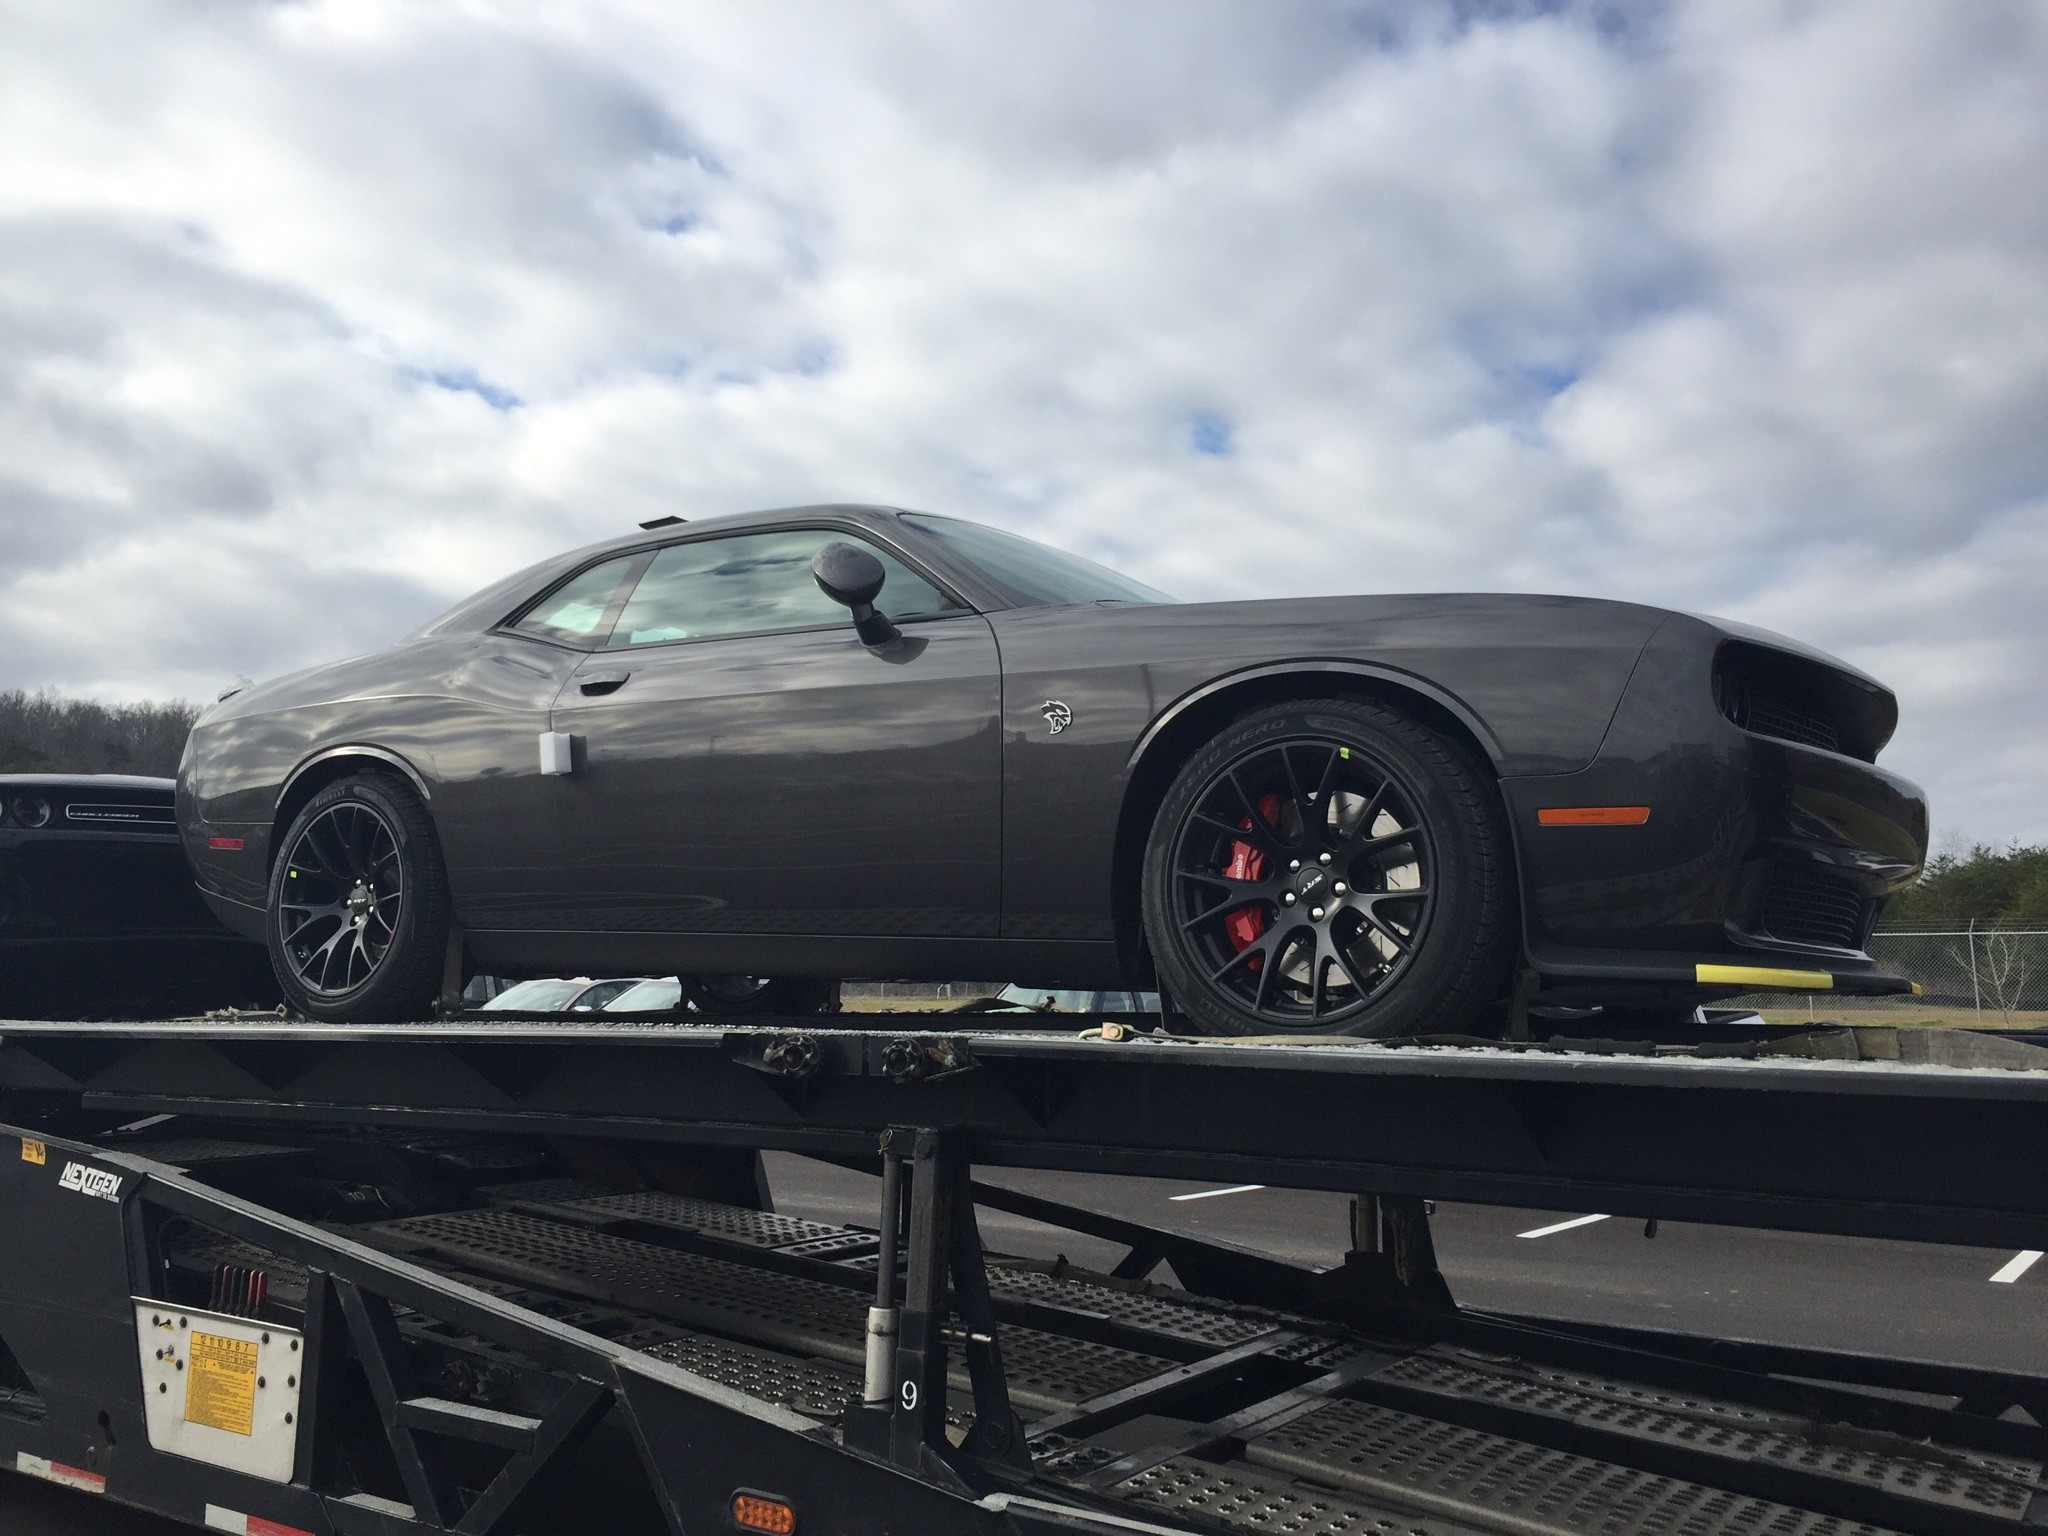 challenger hellcat owner gets 2016my replacement car after his dodge turns sour autoevolution - Challenger Hellcat